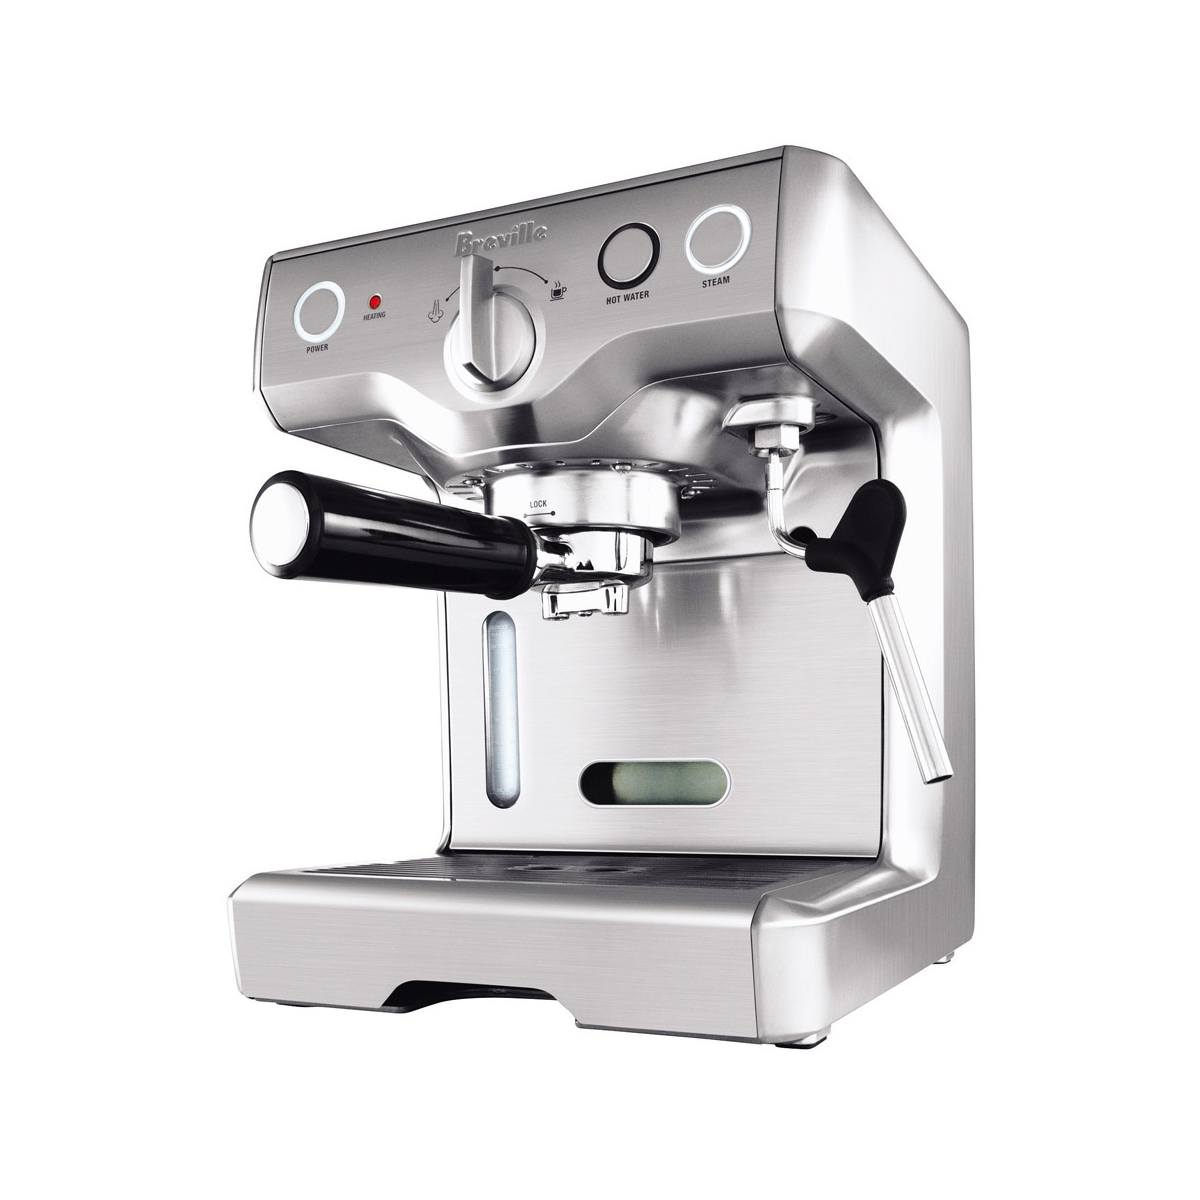 brevillie 800esxl espresso machine